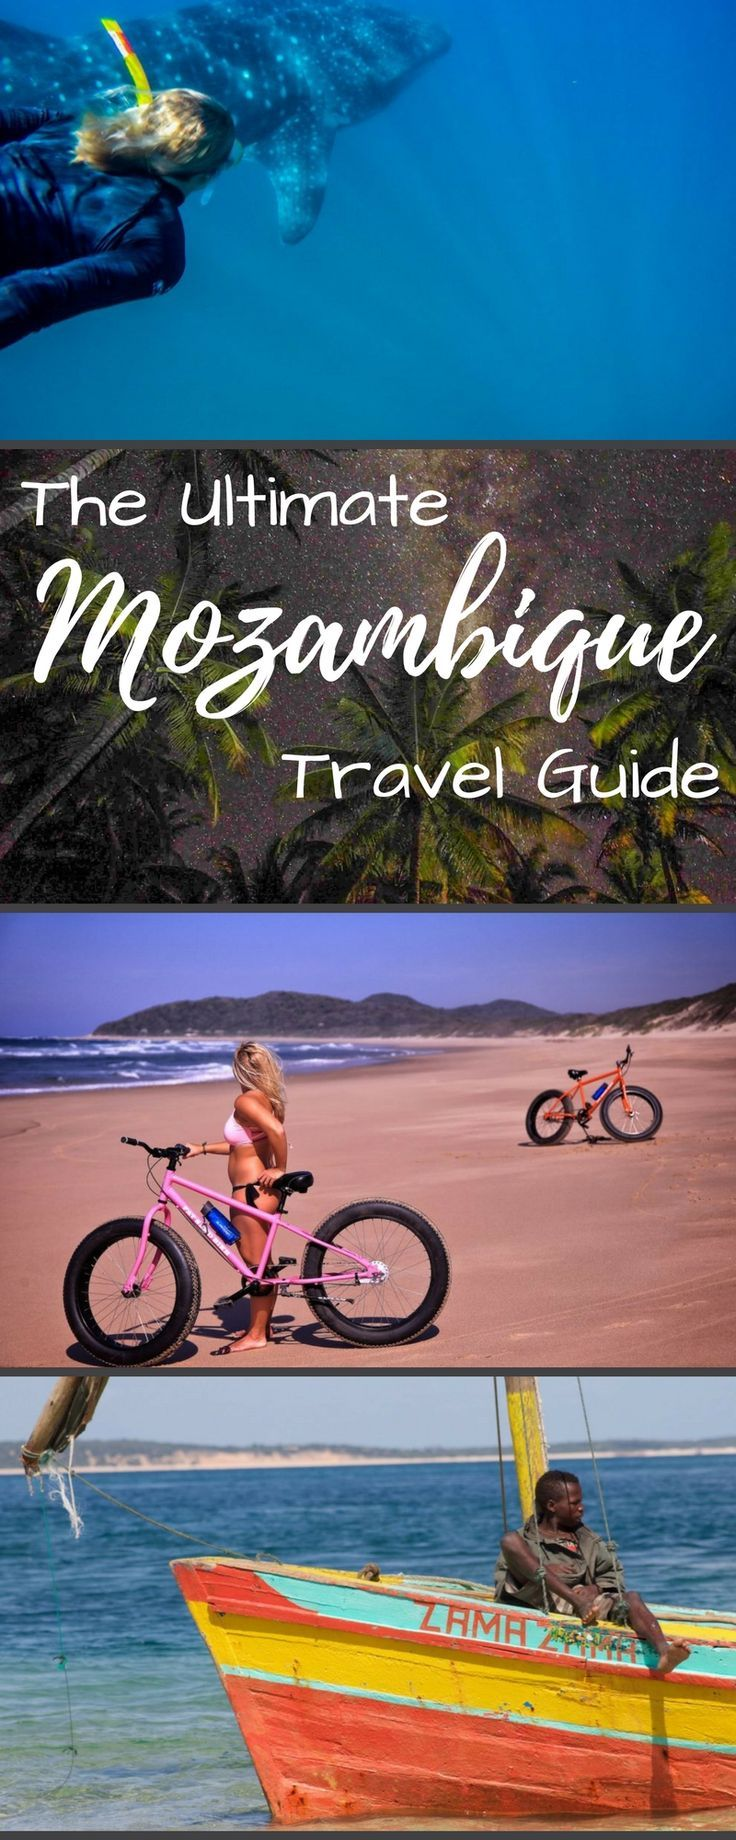 All you need to know about travel in Mozambique and other Africa travel. What the culture, food, beaches, people, and even a few resorts in Mozambique.